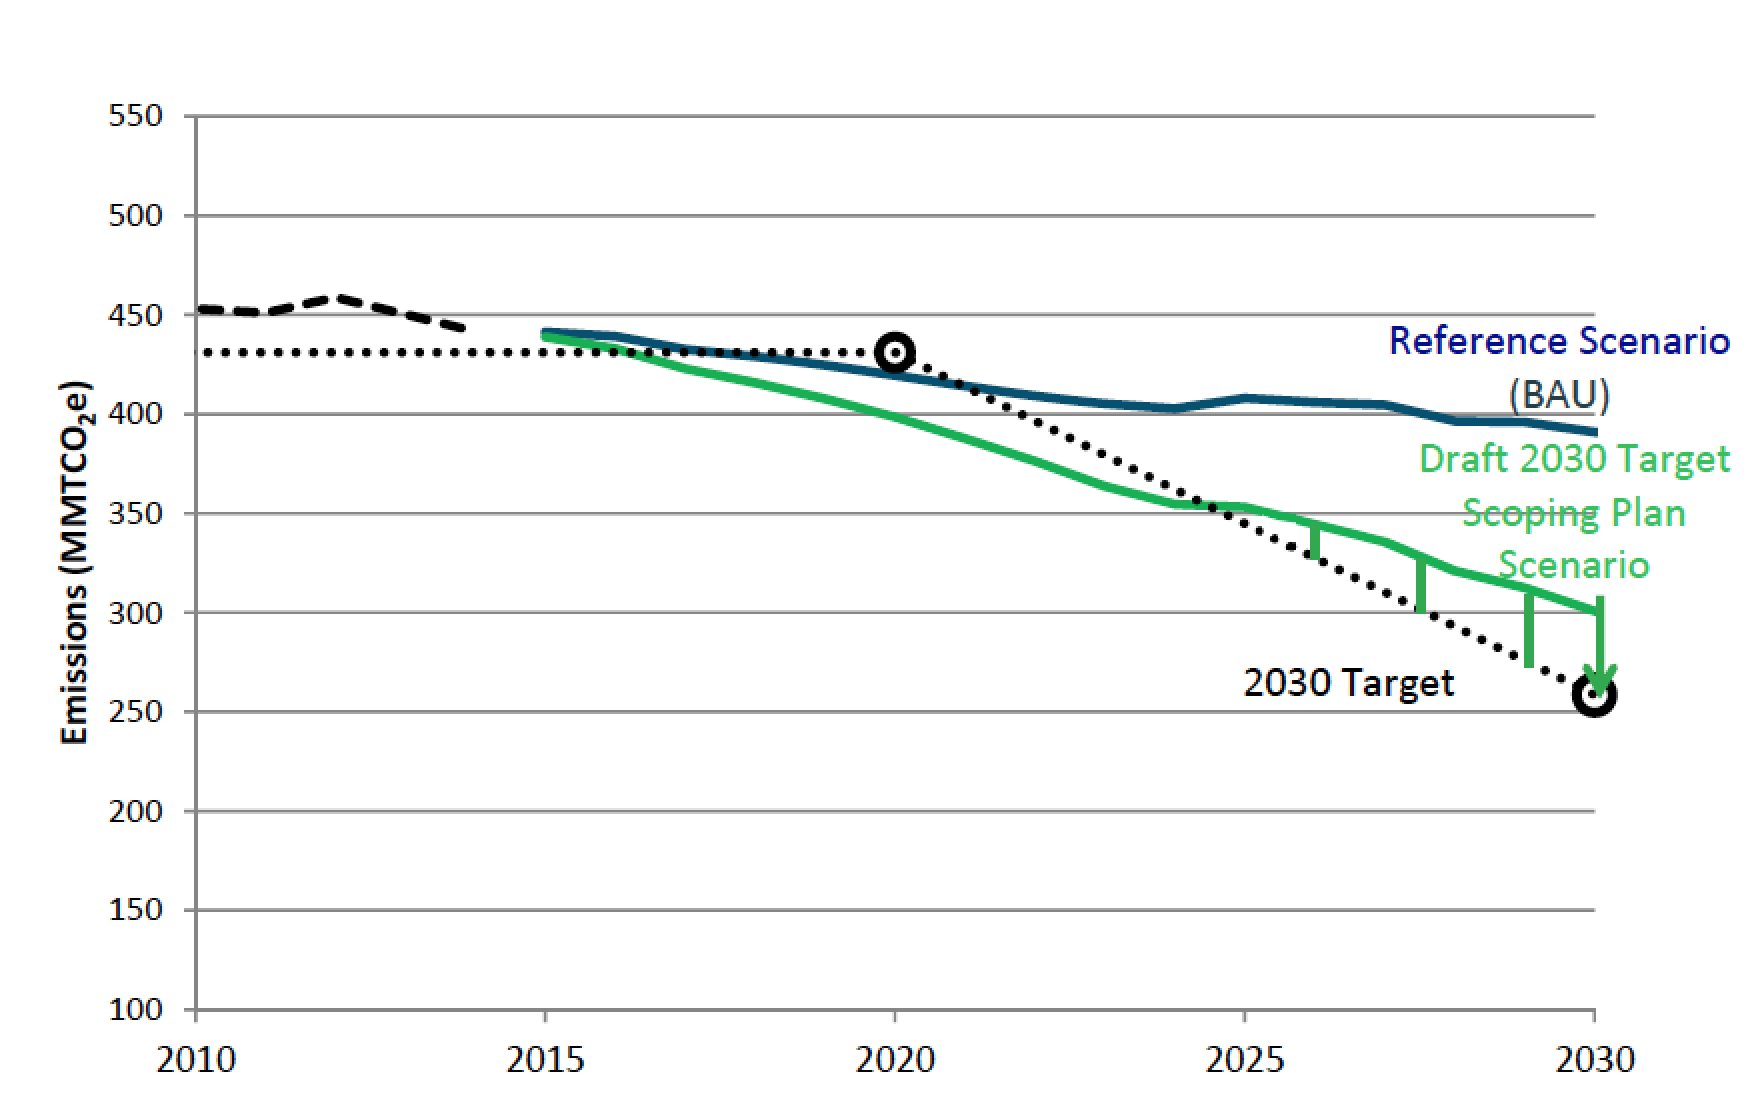 Source: Figure III-3 in CARB's  2030 Scoping Plan Discussion Draft